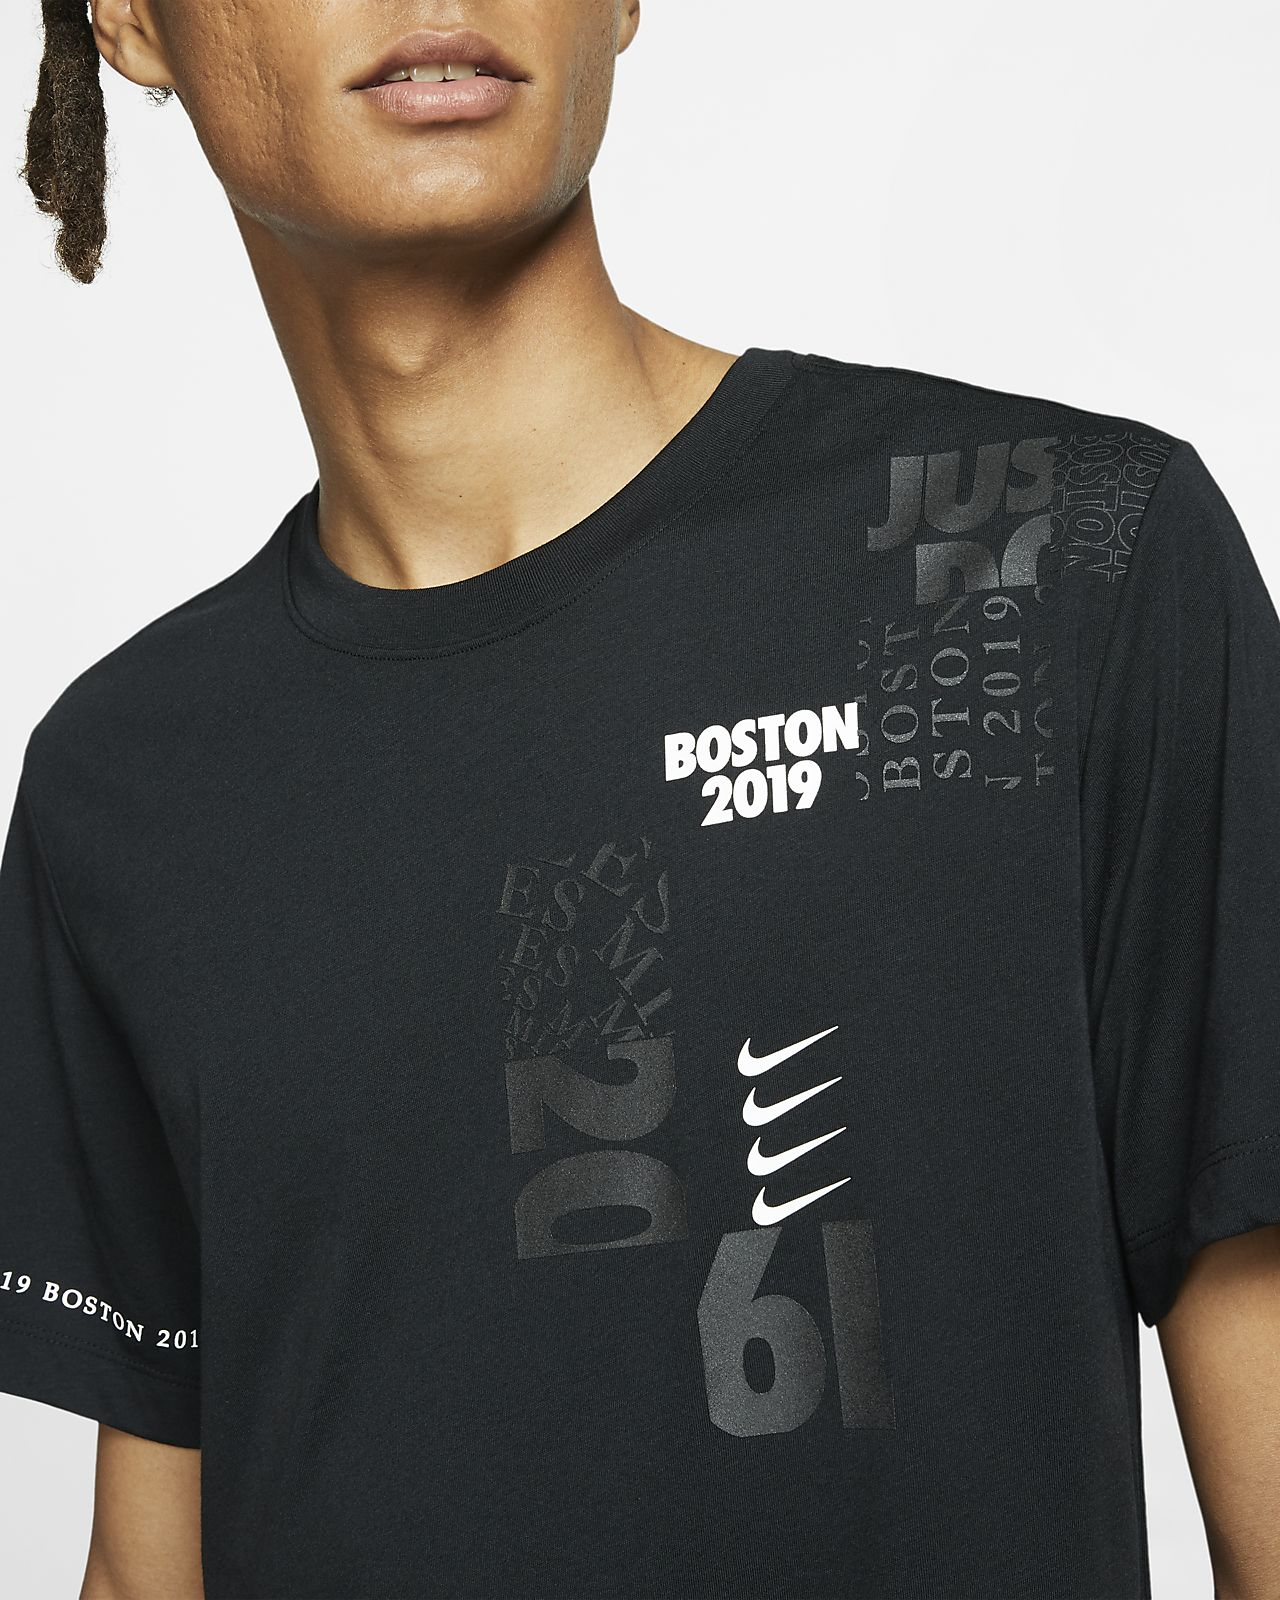 562a11776 Boston College Nike T Shirt – EDGE Engineering and Consulting Limited